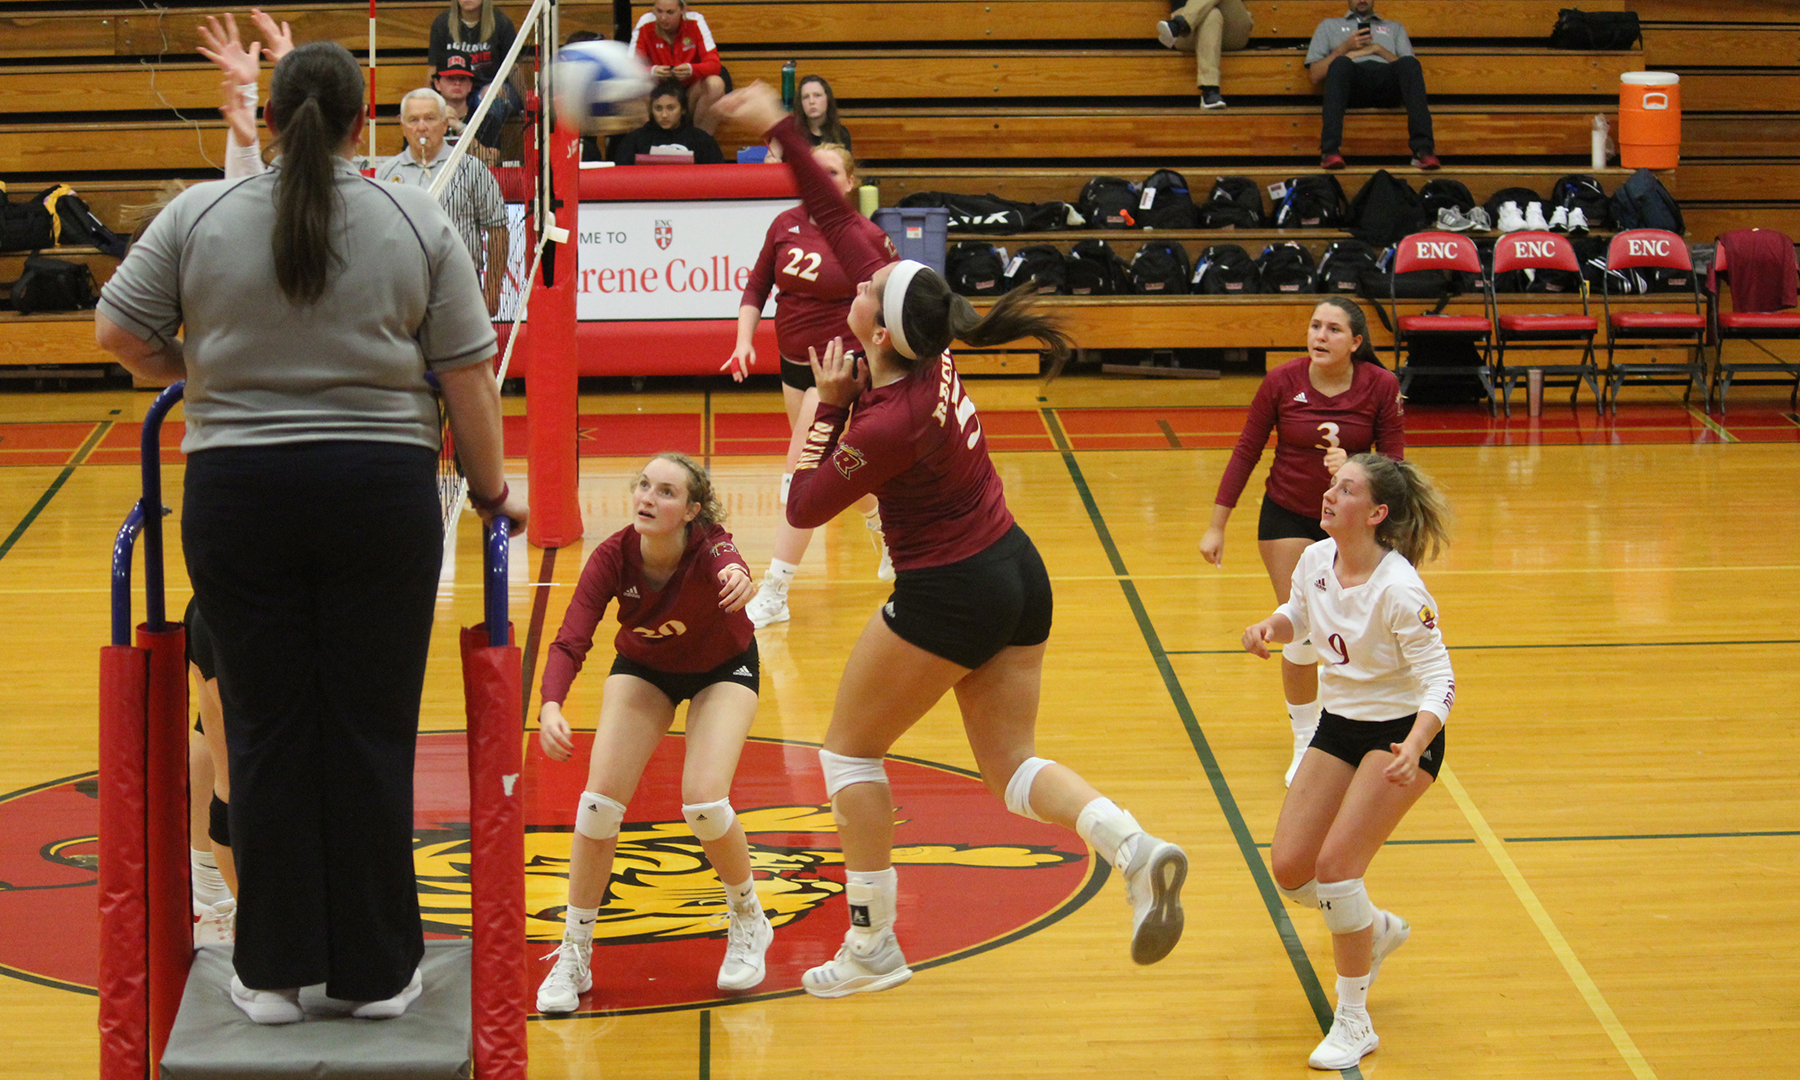 Women's Volleyball Loses Friday Match at ENC Invitational